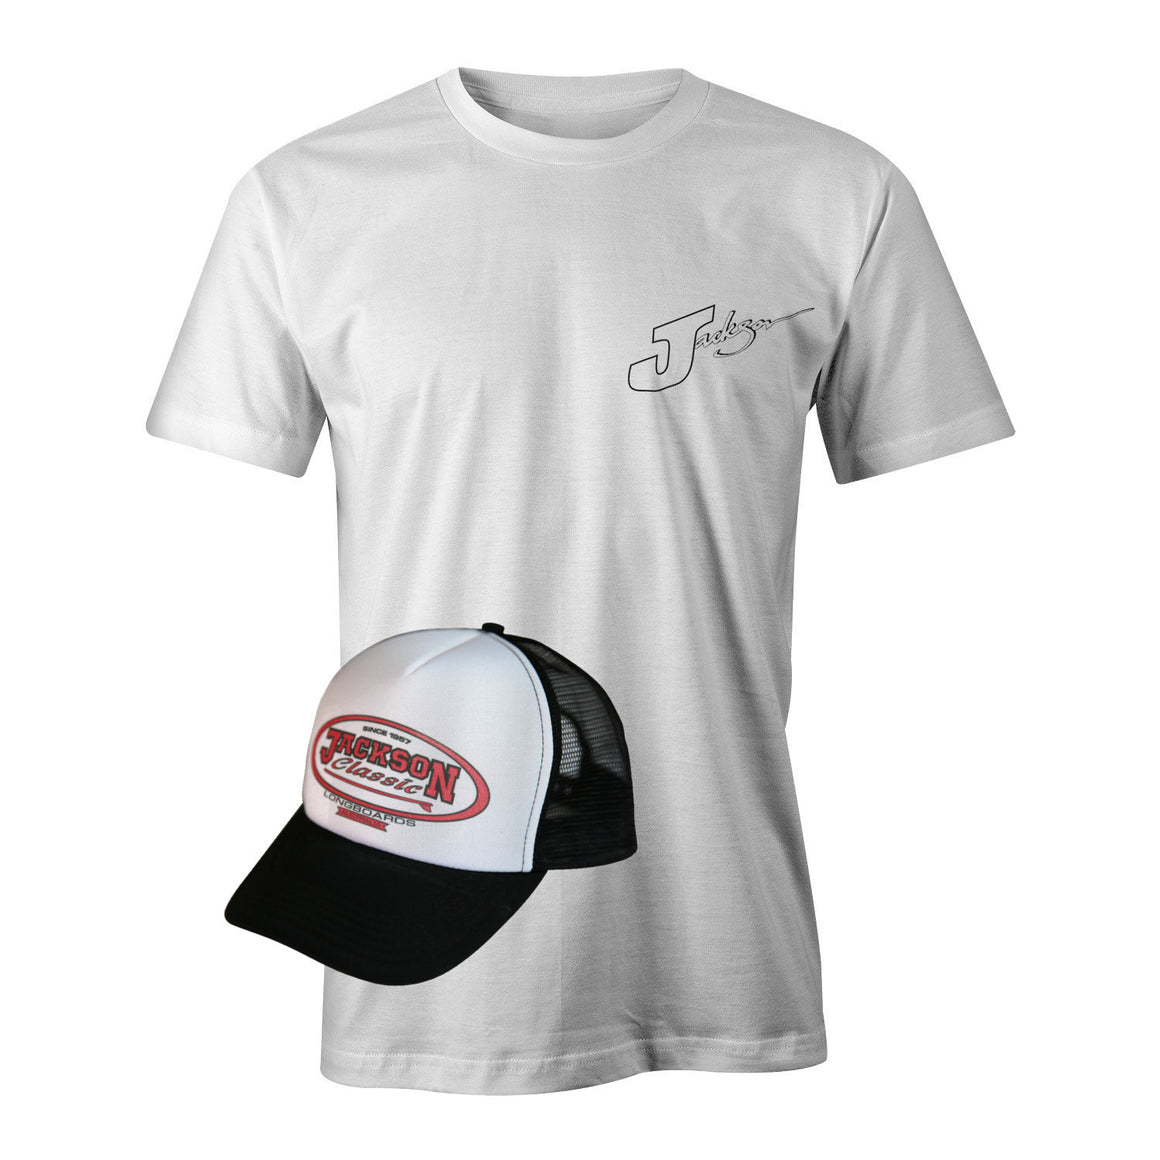 T-Shirt and Cap SPECIAL - CLASSIC LOGO on cap - Grab both to get a bargain